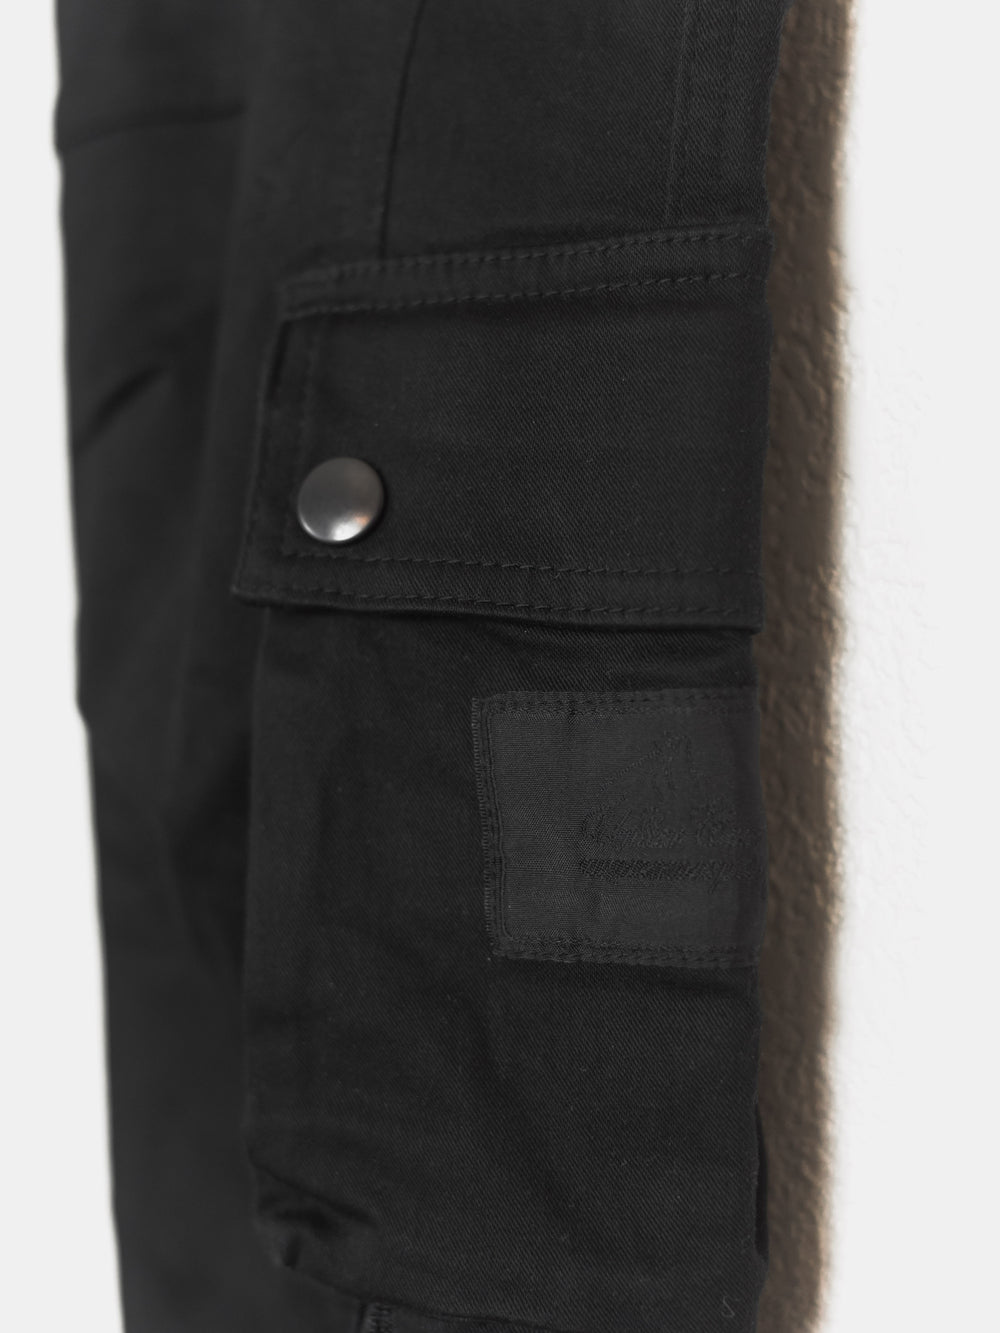 Undercover AW09 Earmuff Maniac Cargo Pants